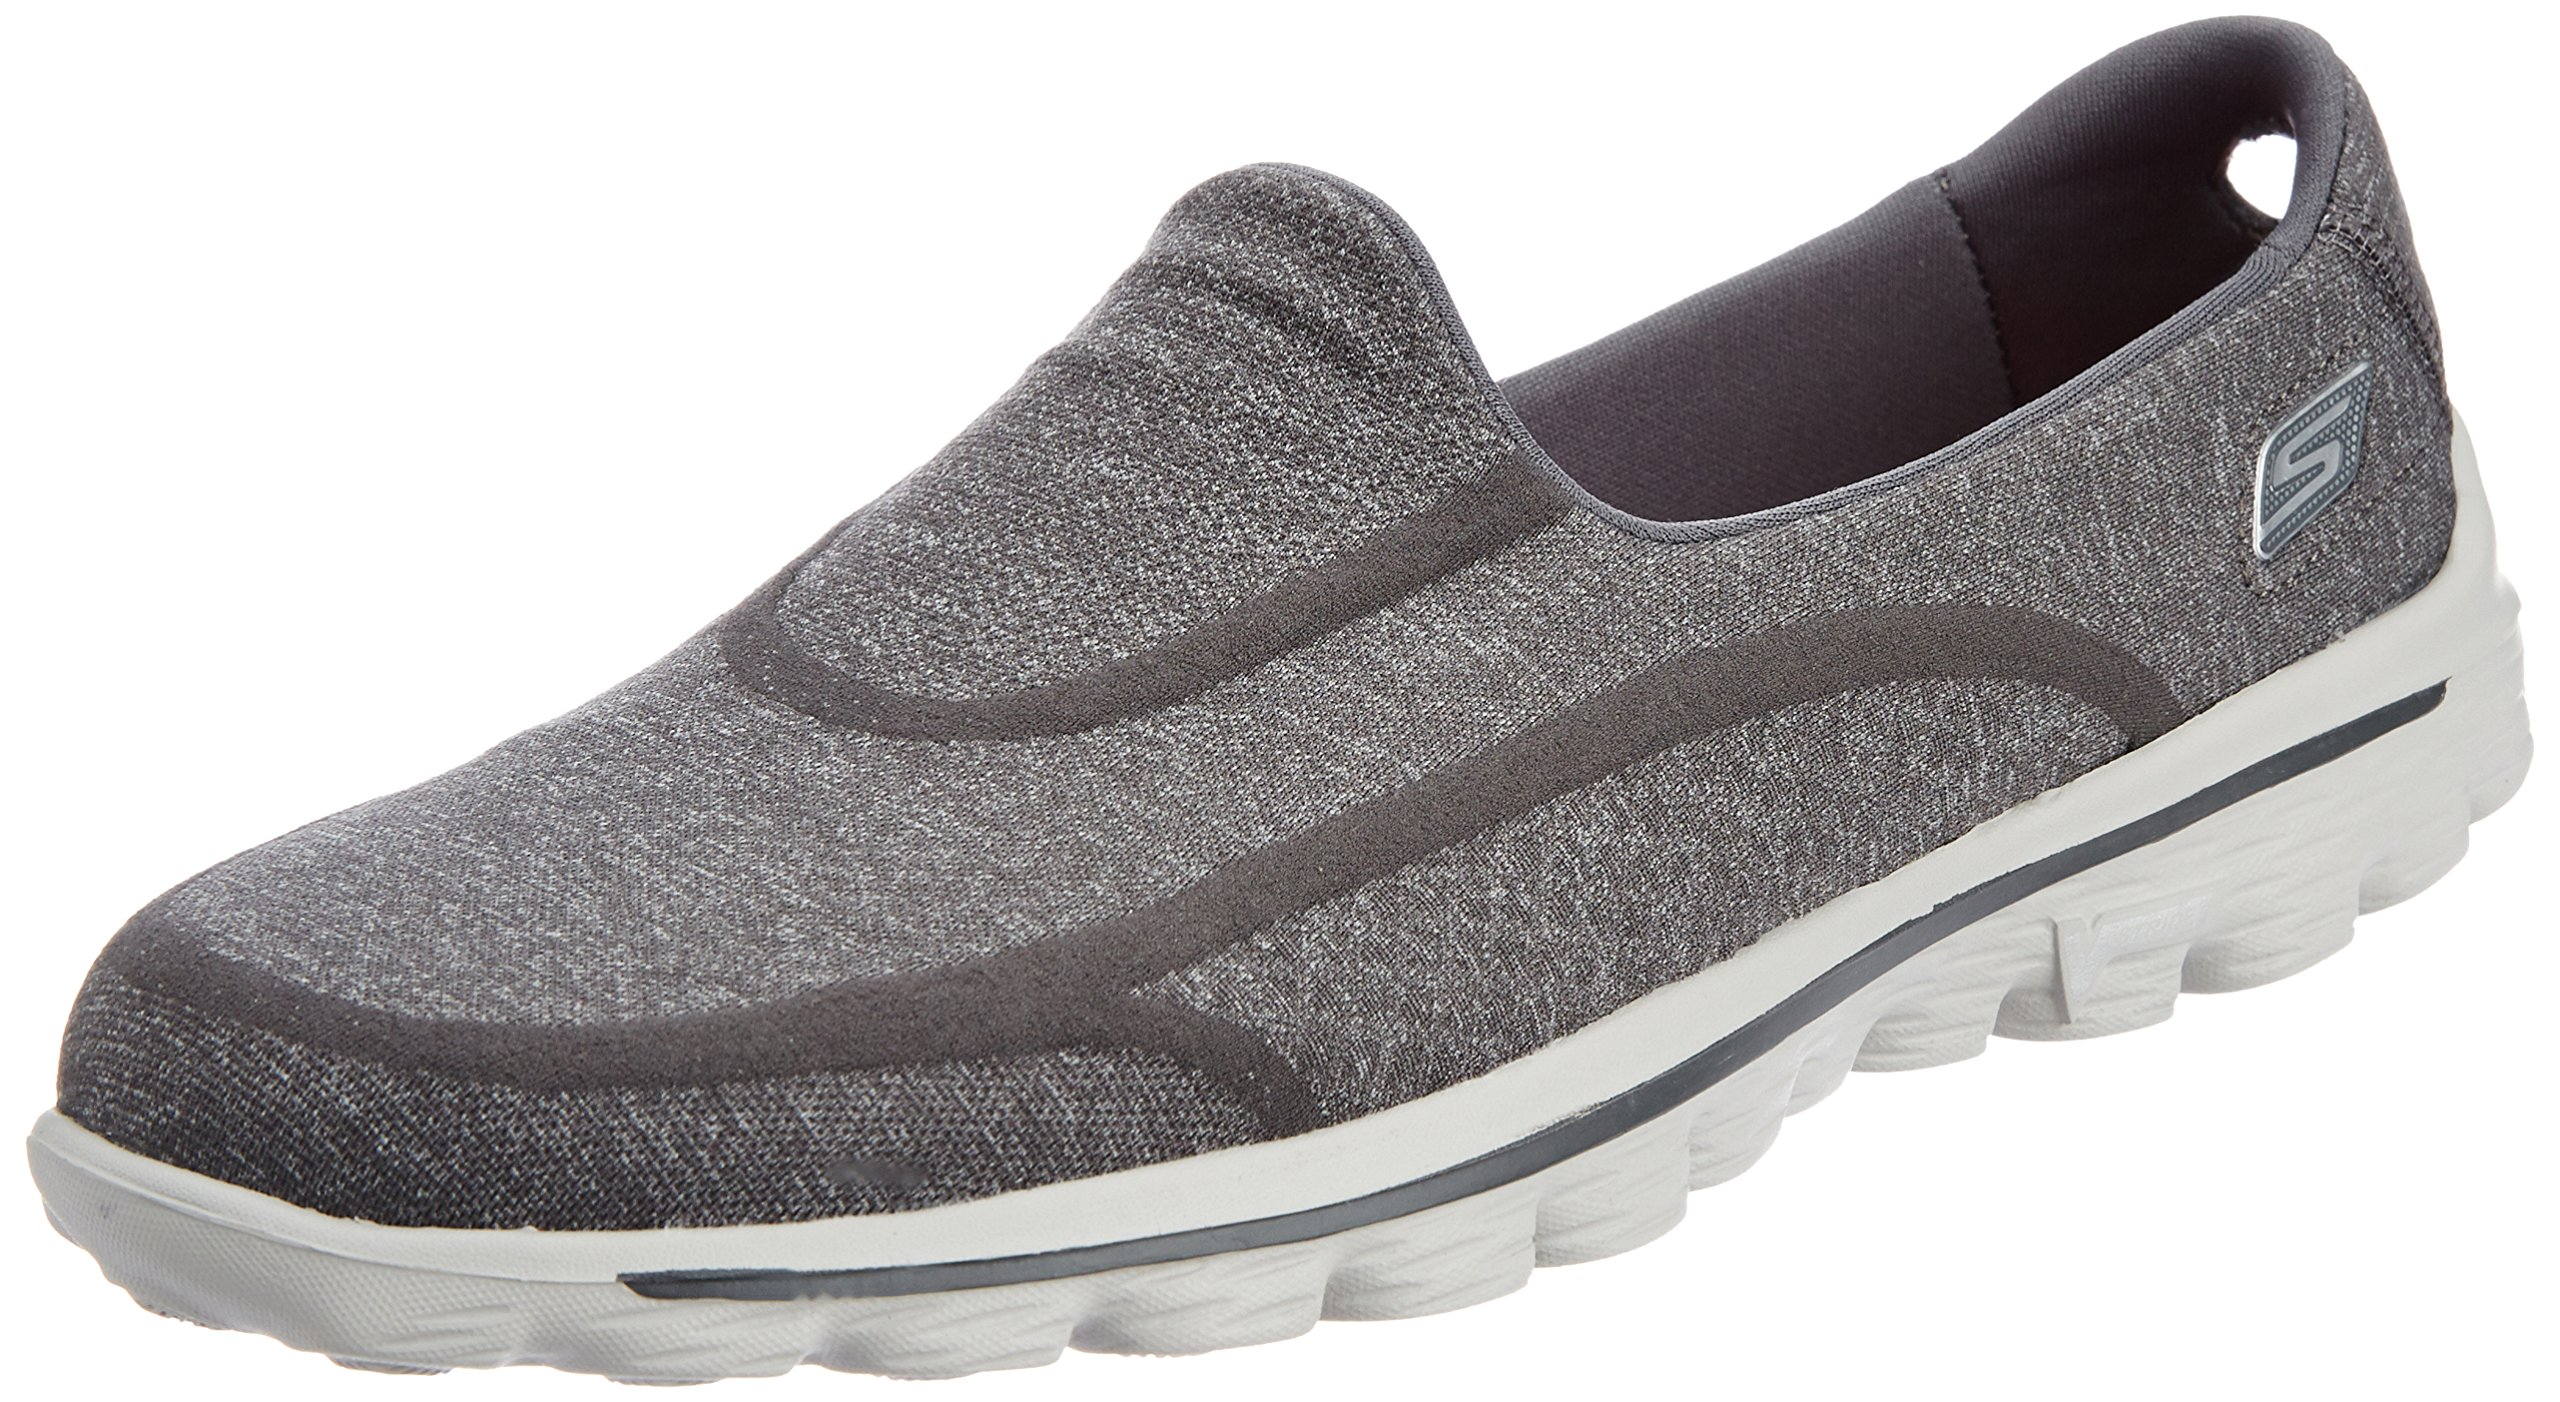 Skechers Performance Women's Go Walk 2 Super Sock Slip-On Walking Shoe,Old Charcoal,7.5 M US